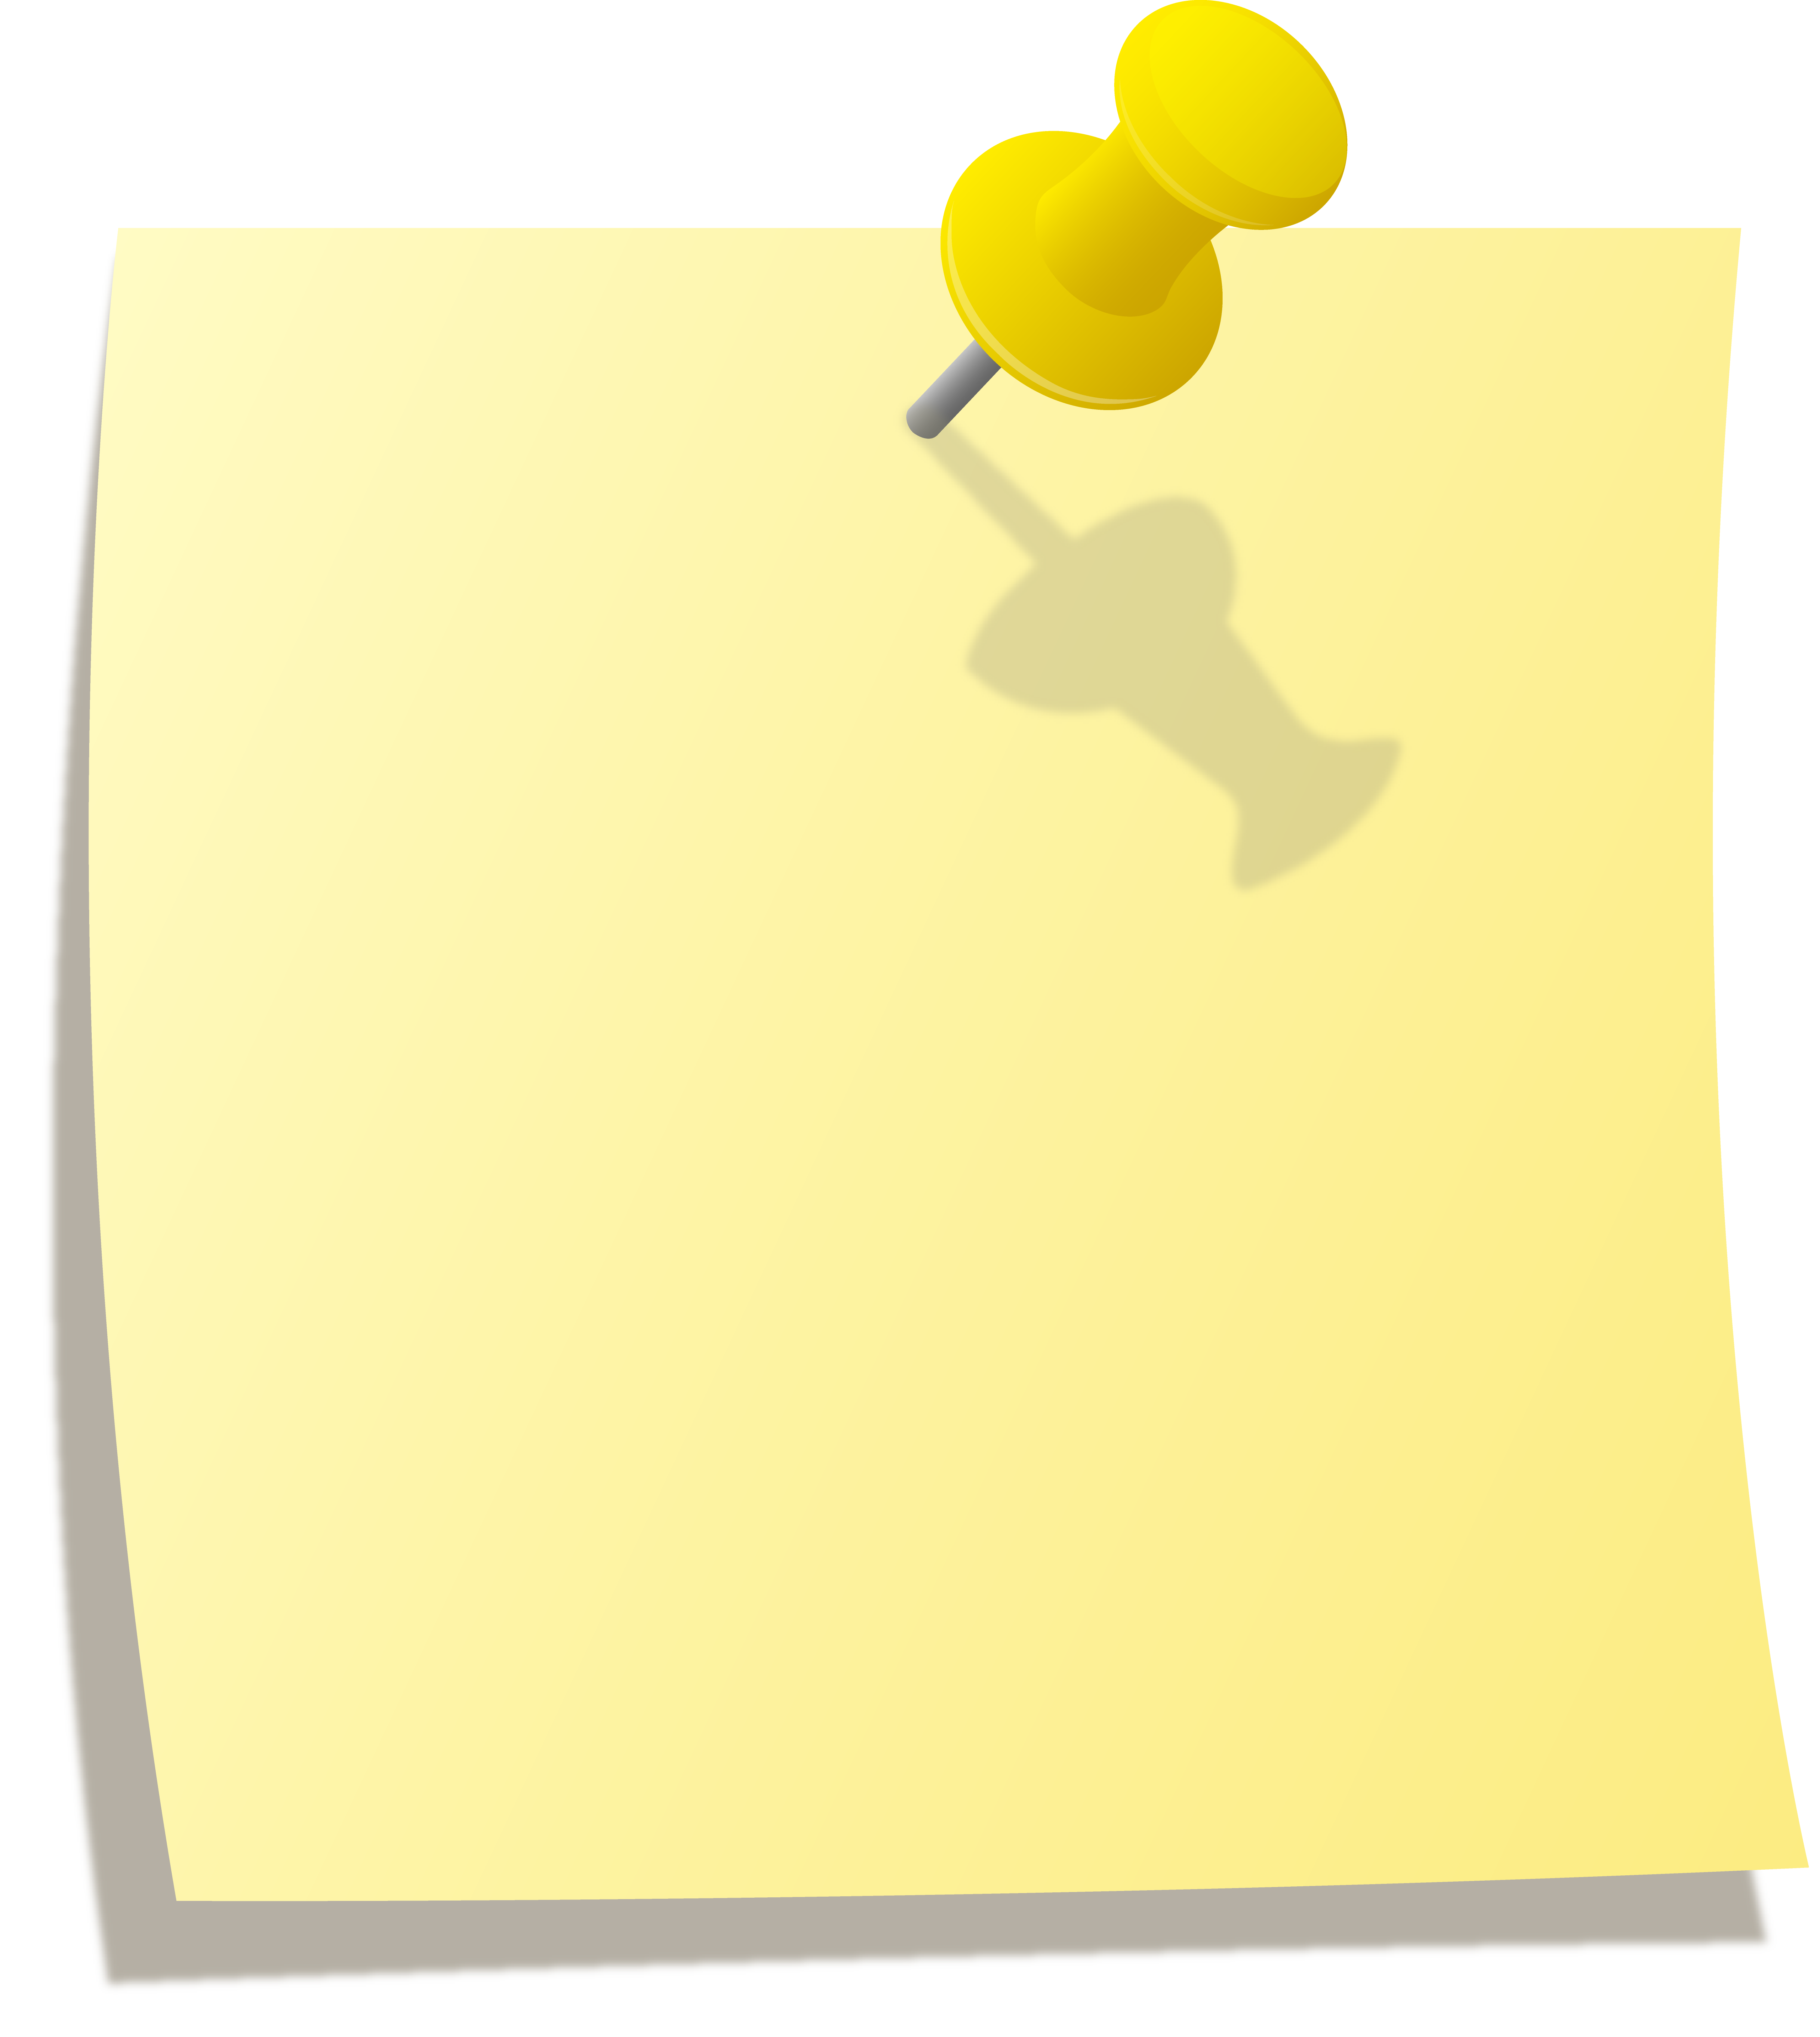 Yellow Note With Thumbtack.